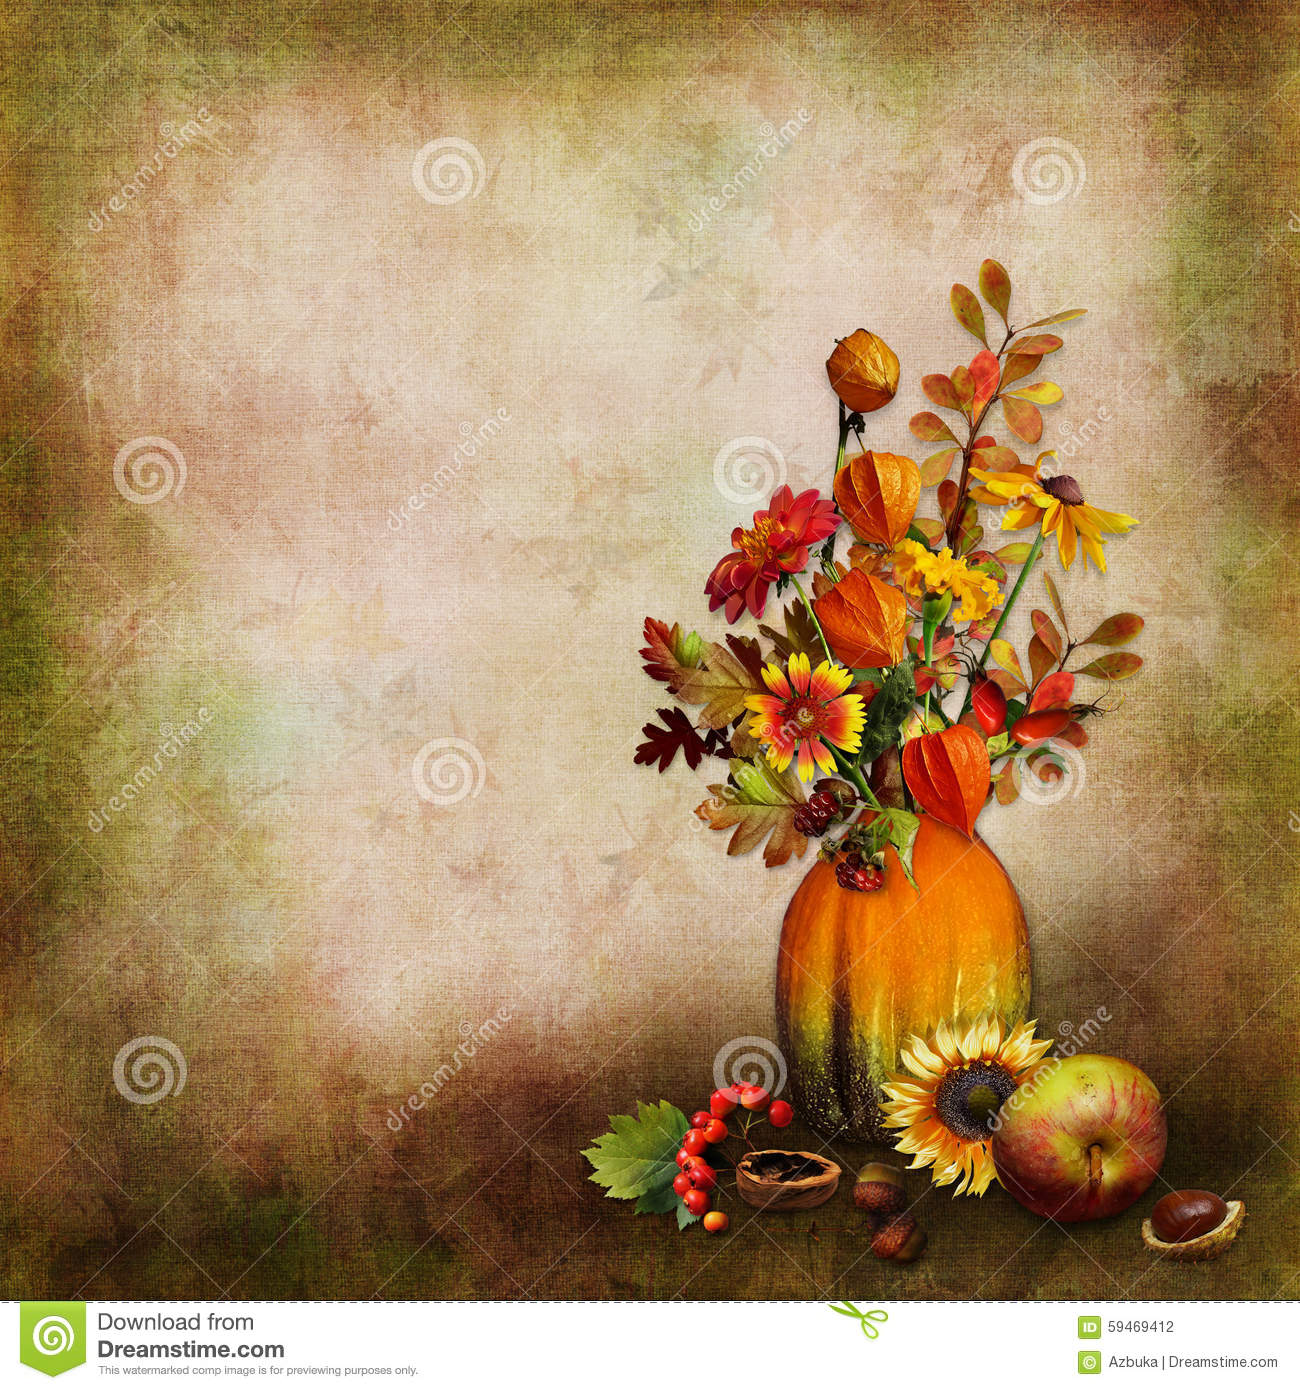 Fall Pumpkin Wallpaper Desktop Bouquet Of Autumn Leaves And Flowers In A Vase From A